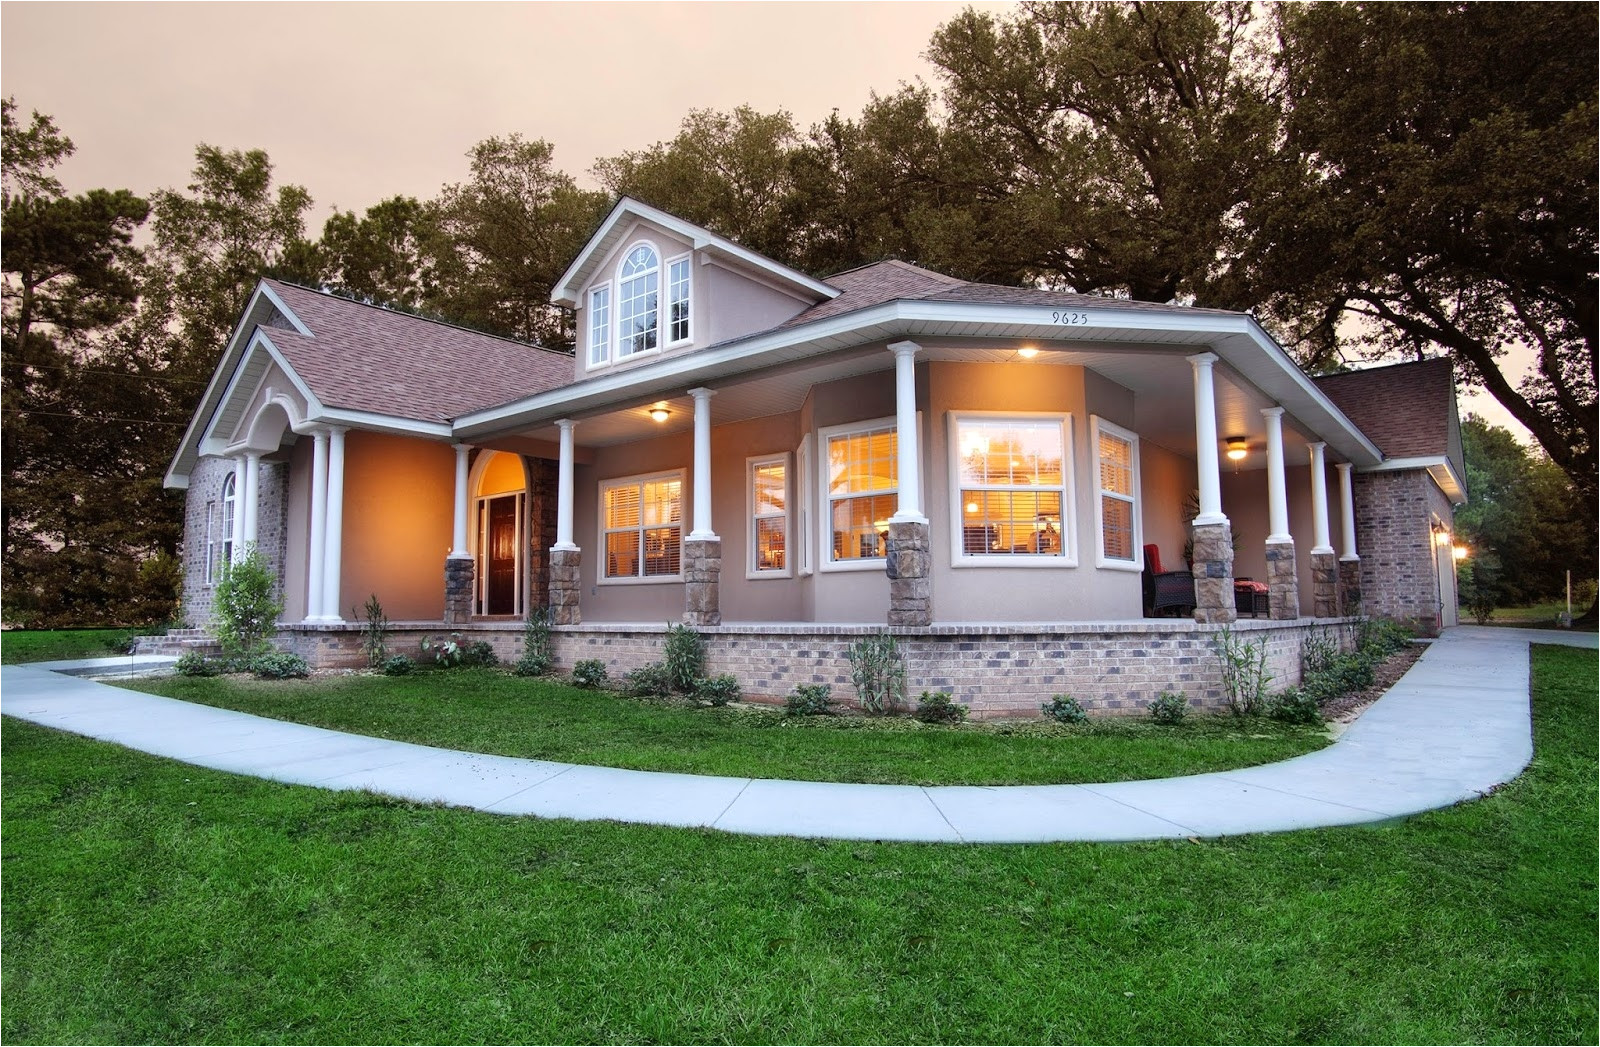 Southern Home Plans Designs southern Home Designs with Wrap Around Porches